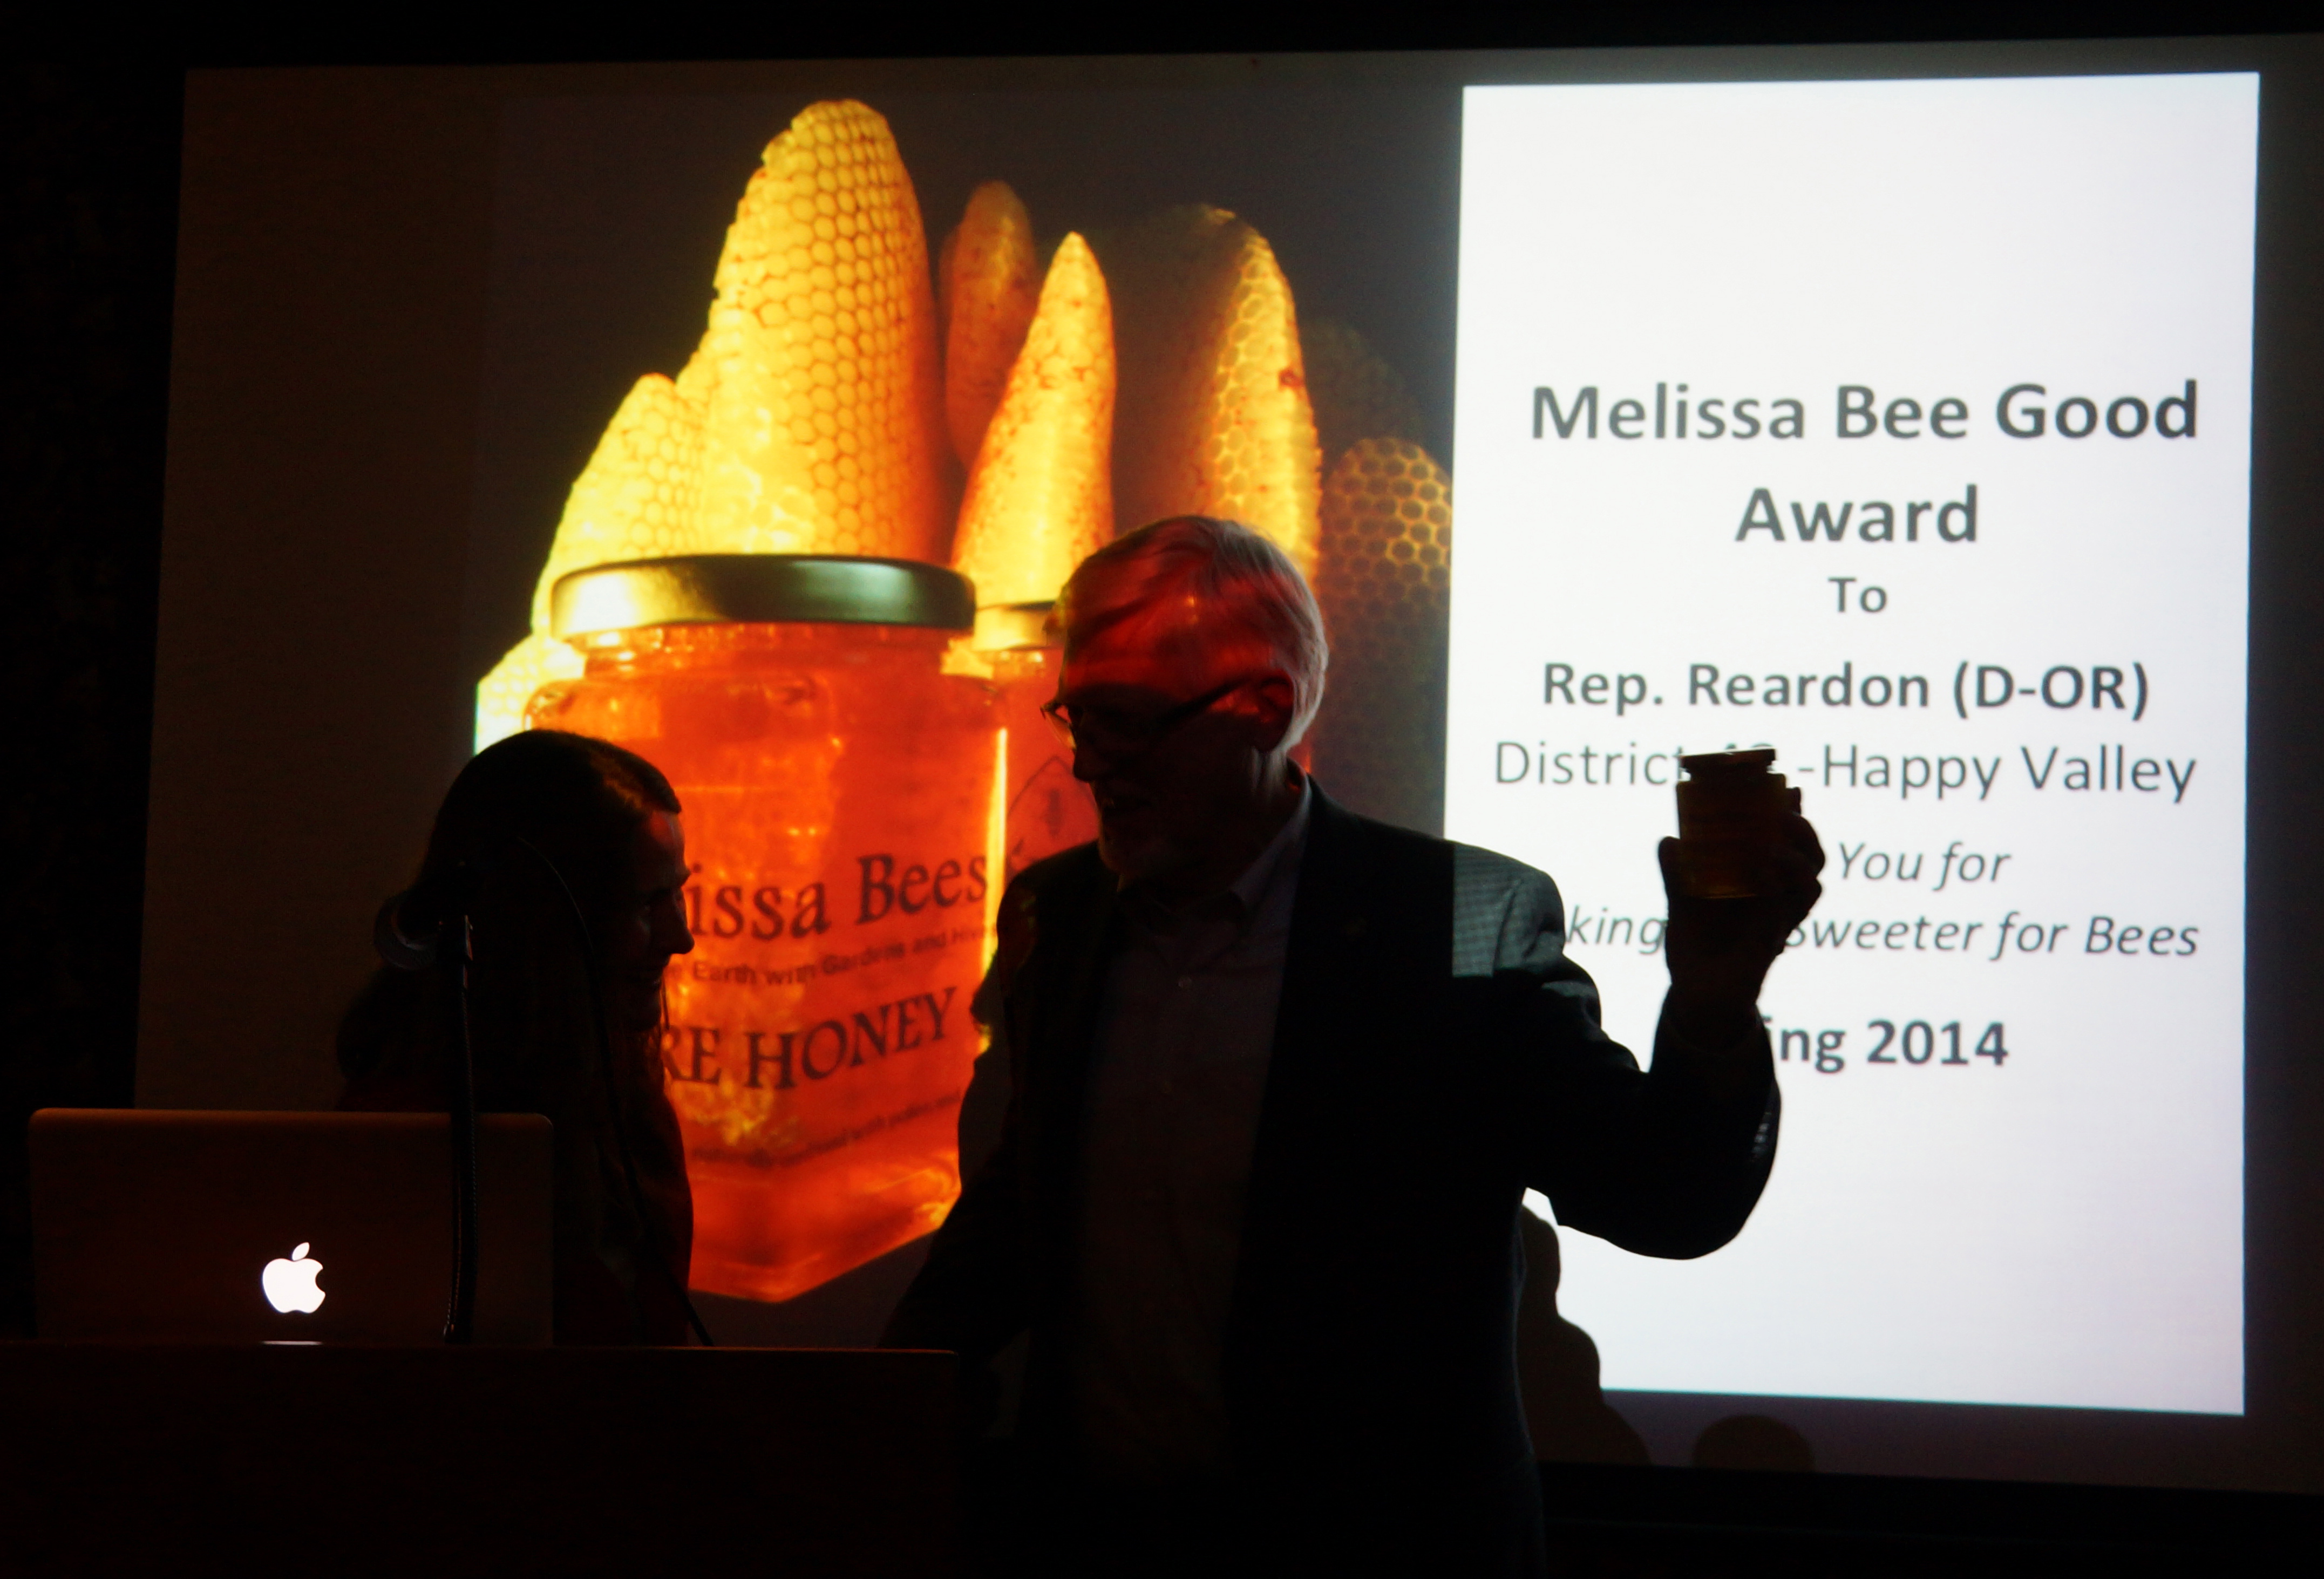 Melissa Bee Good Award Reardon Accepts